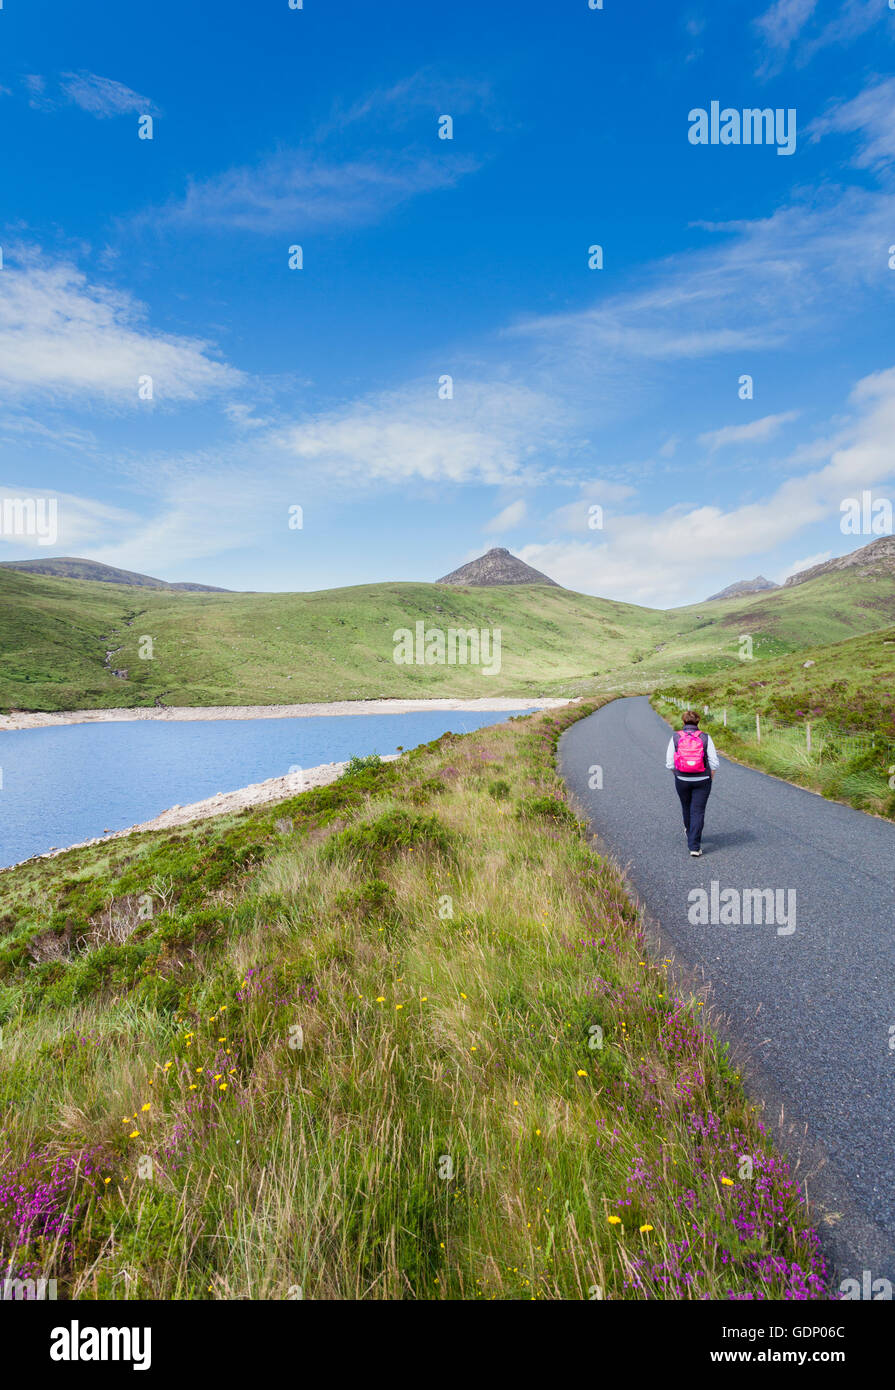 Lone woman walking on pathway beside the Silent Valley Reservoir, Mourne Mountains, Down, Norethern Ireland - Stock Image